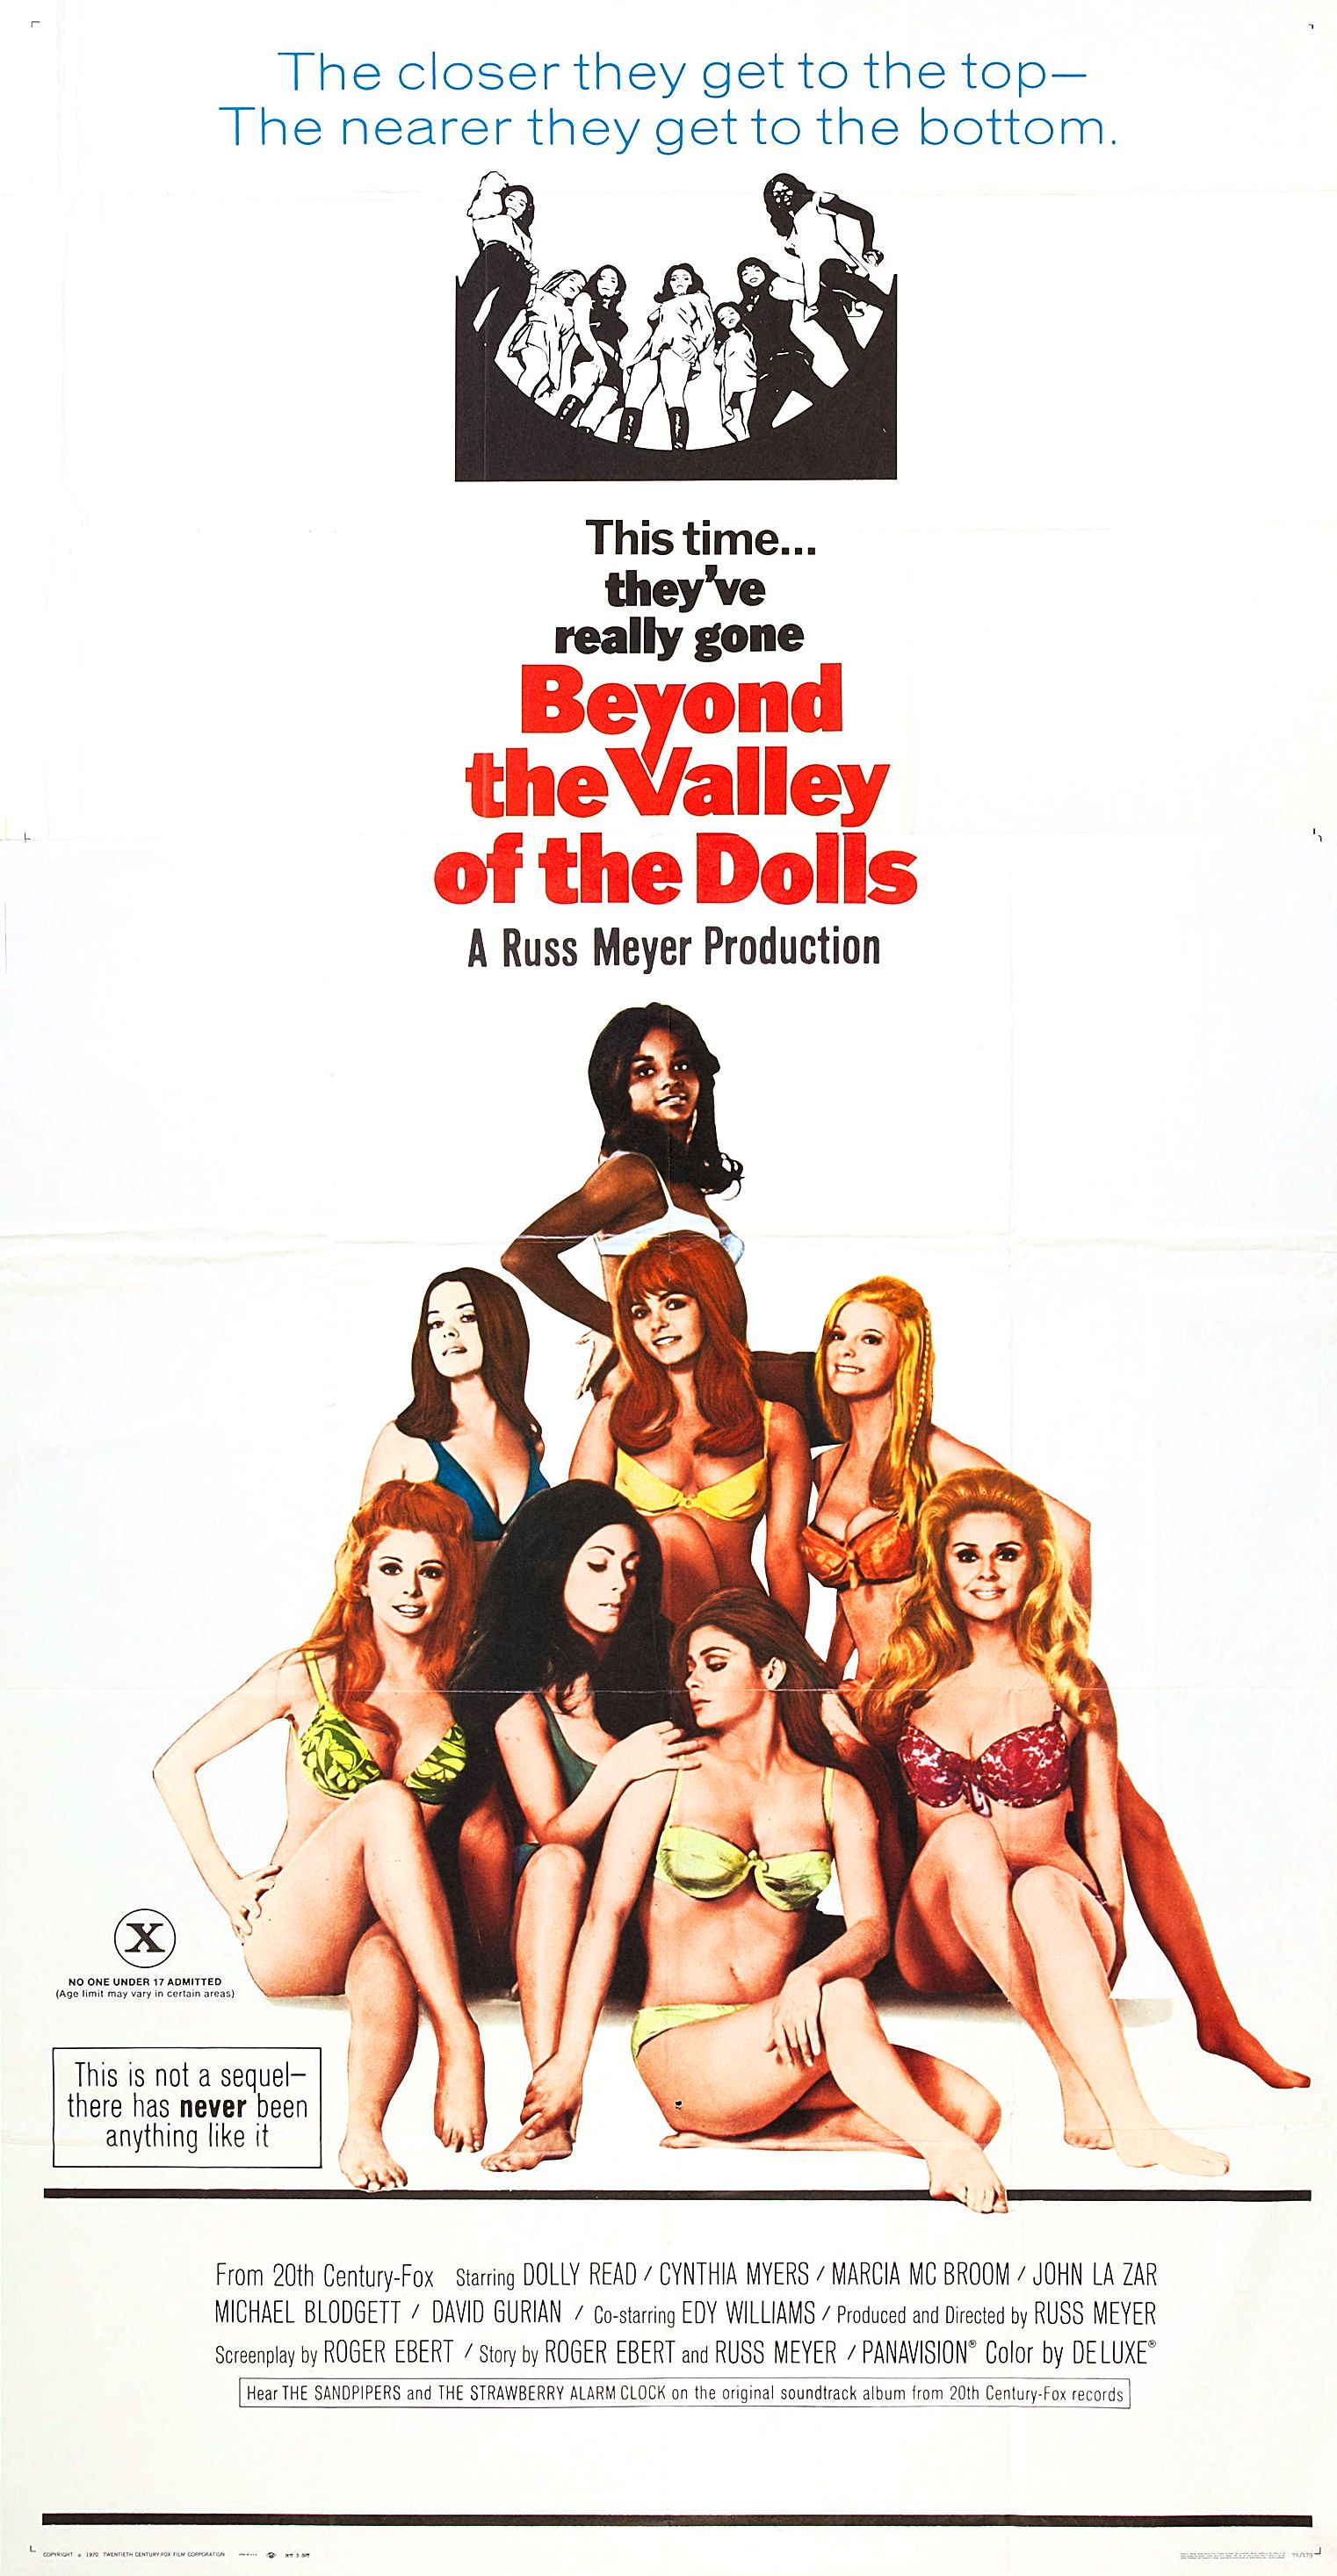 Exploitation - Beyond the Valley of the Dolls